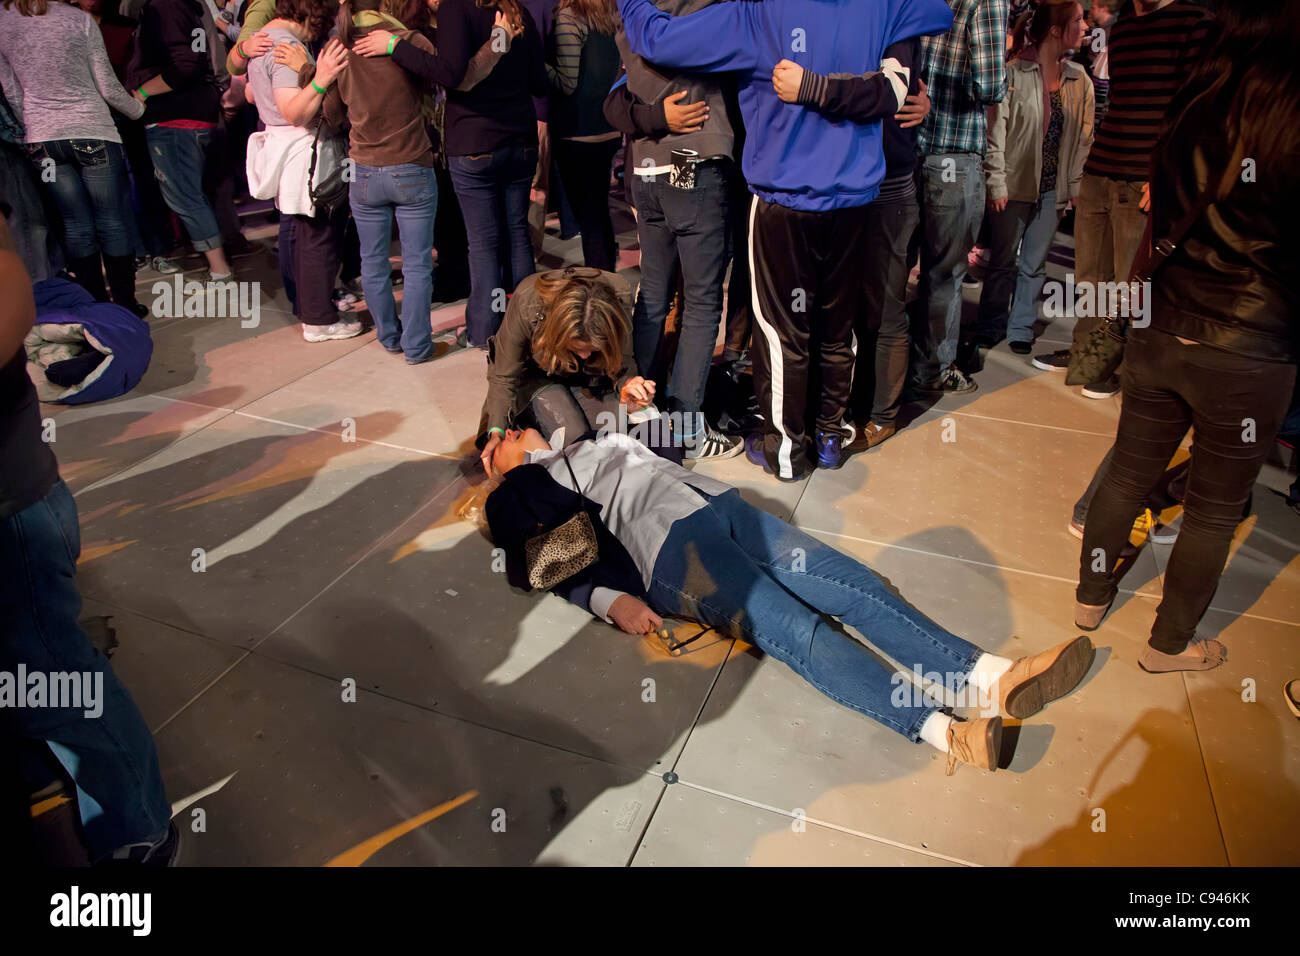 Detroit, Michigan - Thousands attended a 24-hour prayer and